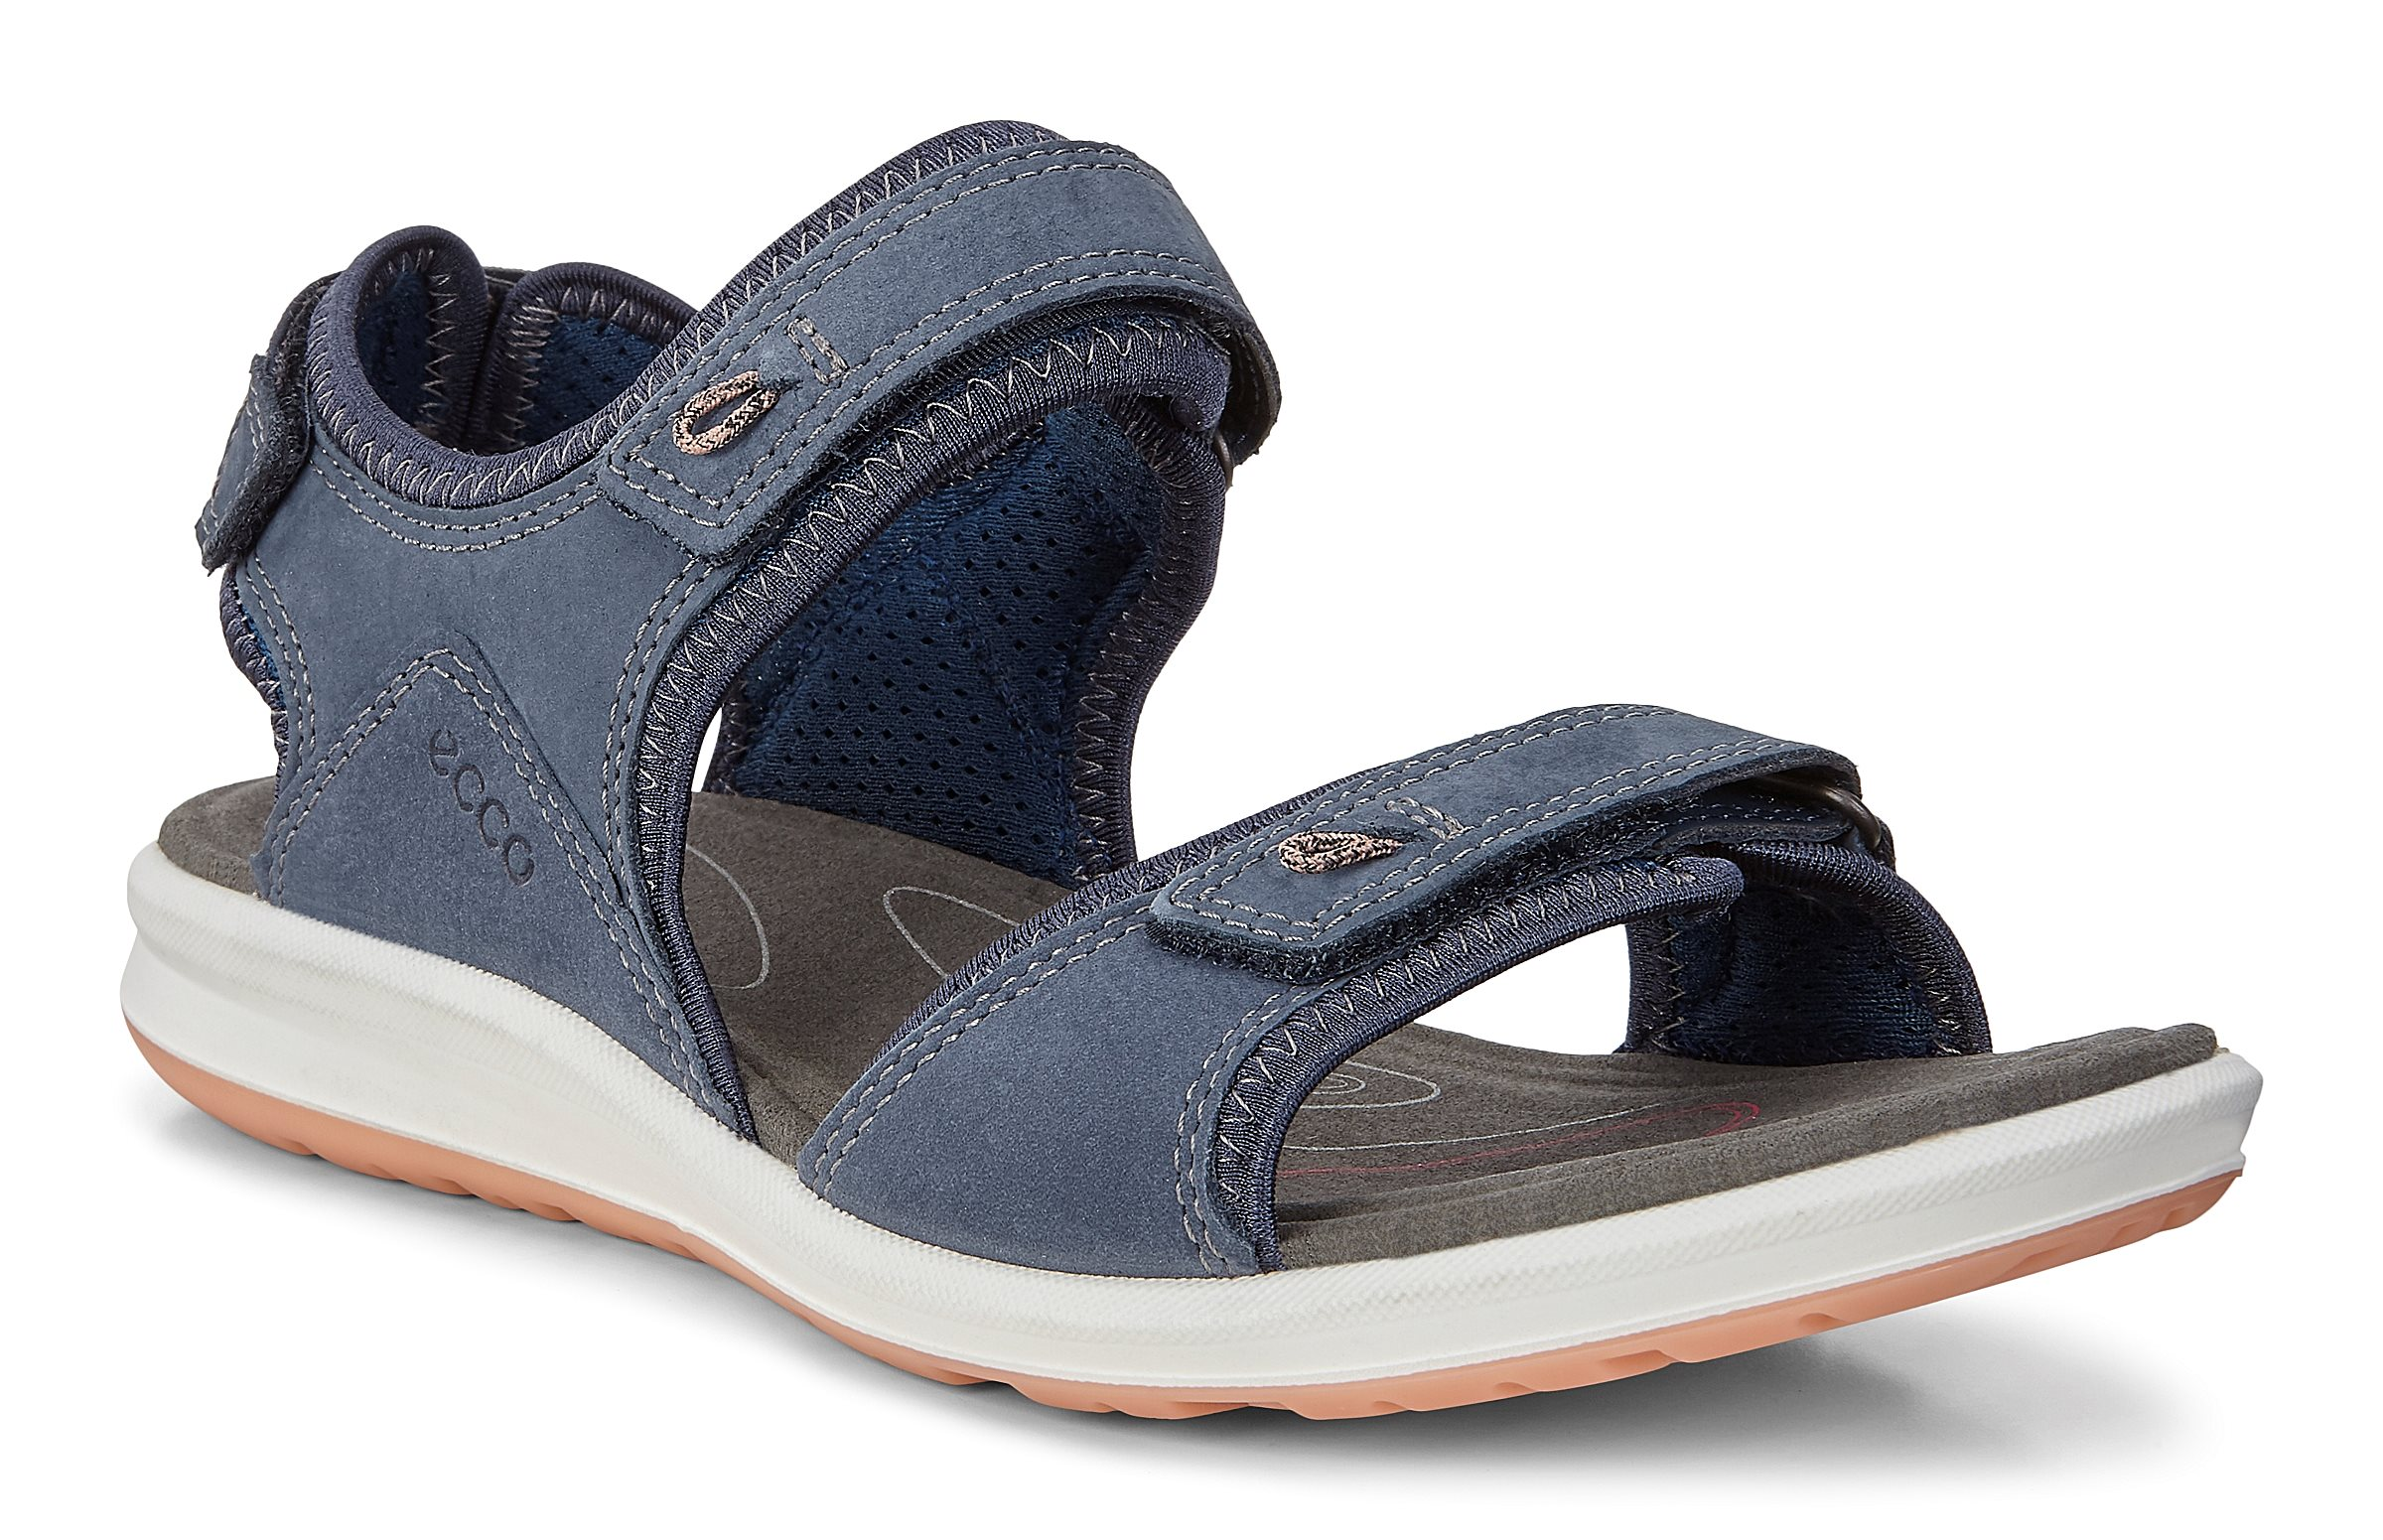 Women's Outdoor Shoes | Buy from the Official ECCO® Online Store